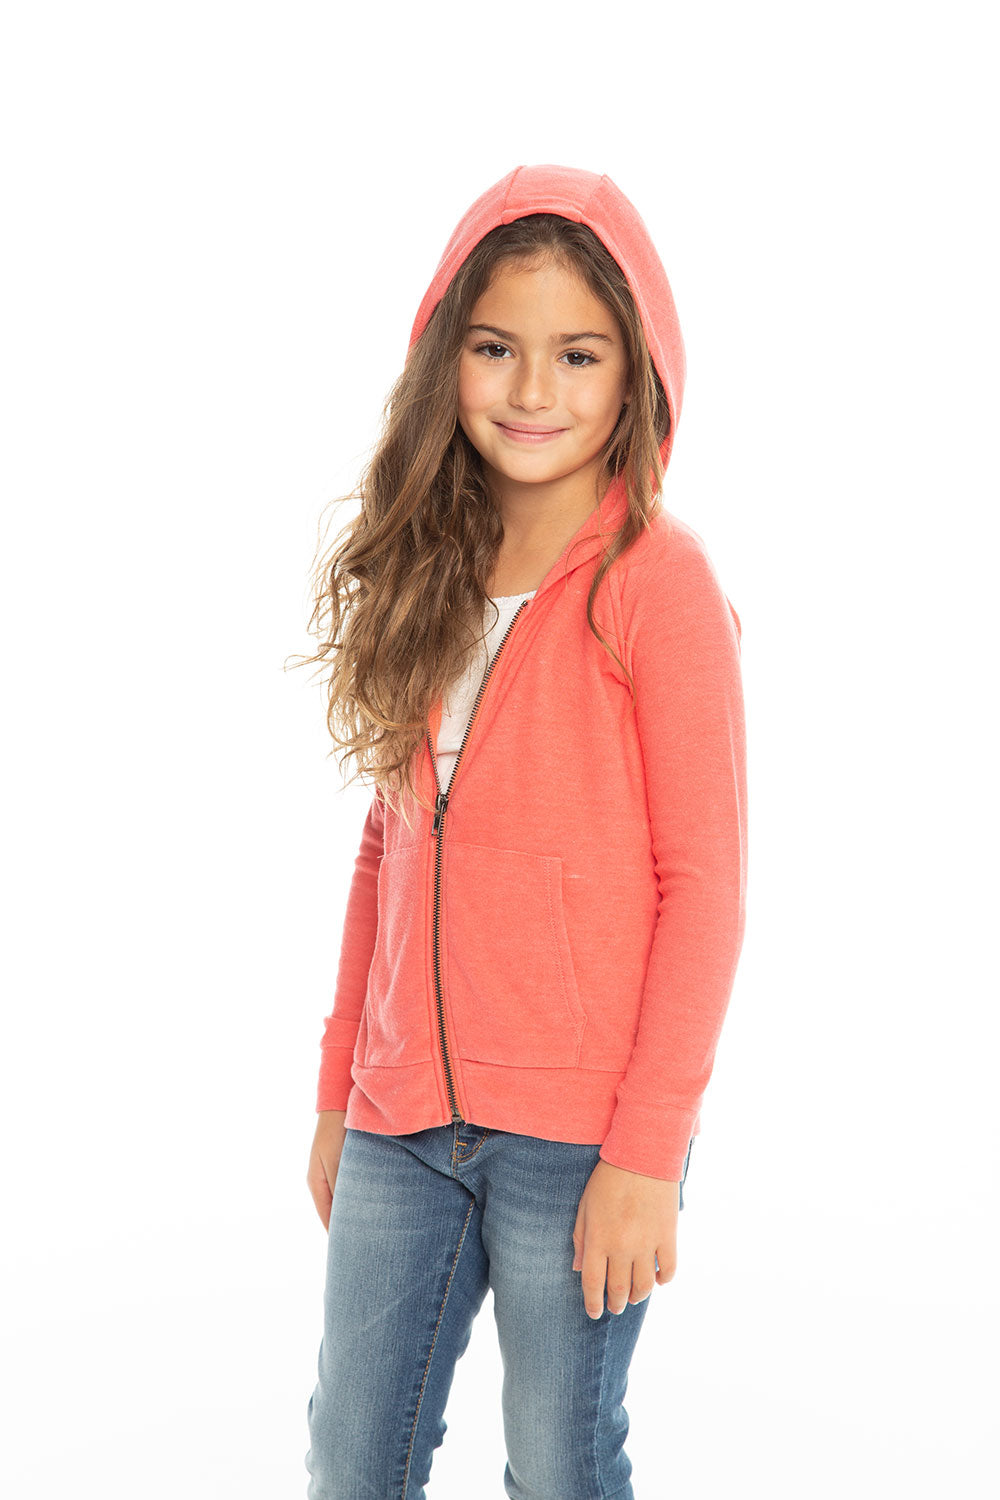 Cozy Knit L/S Zip Up Hoodie, Girls, chaserbrand.com,chaser clothing,chaser apparel,chaser los angeles